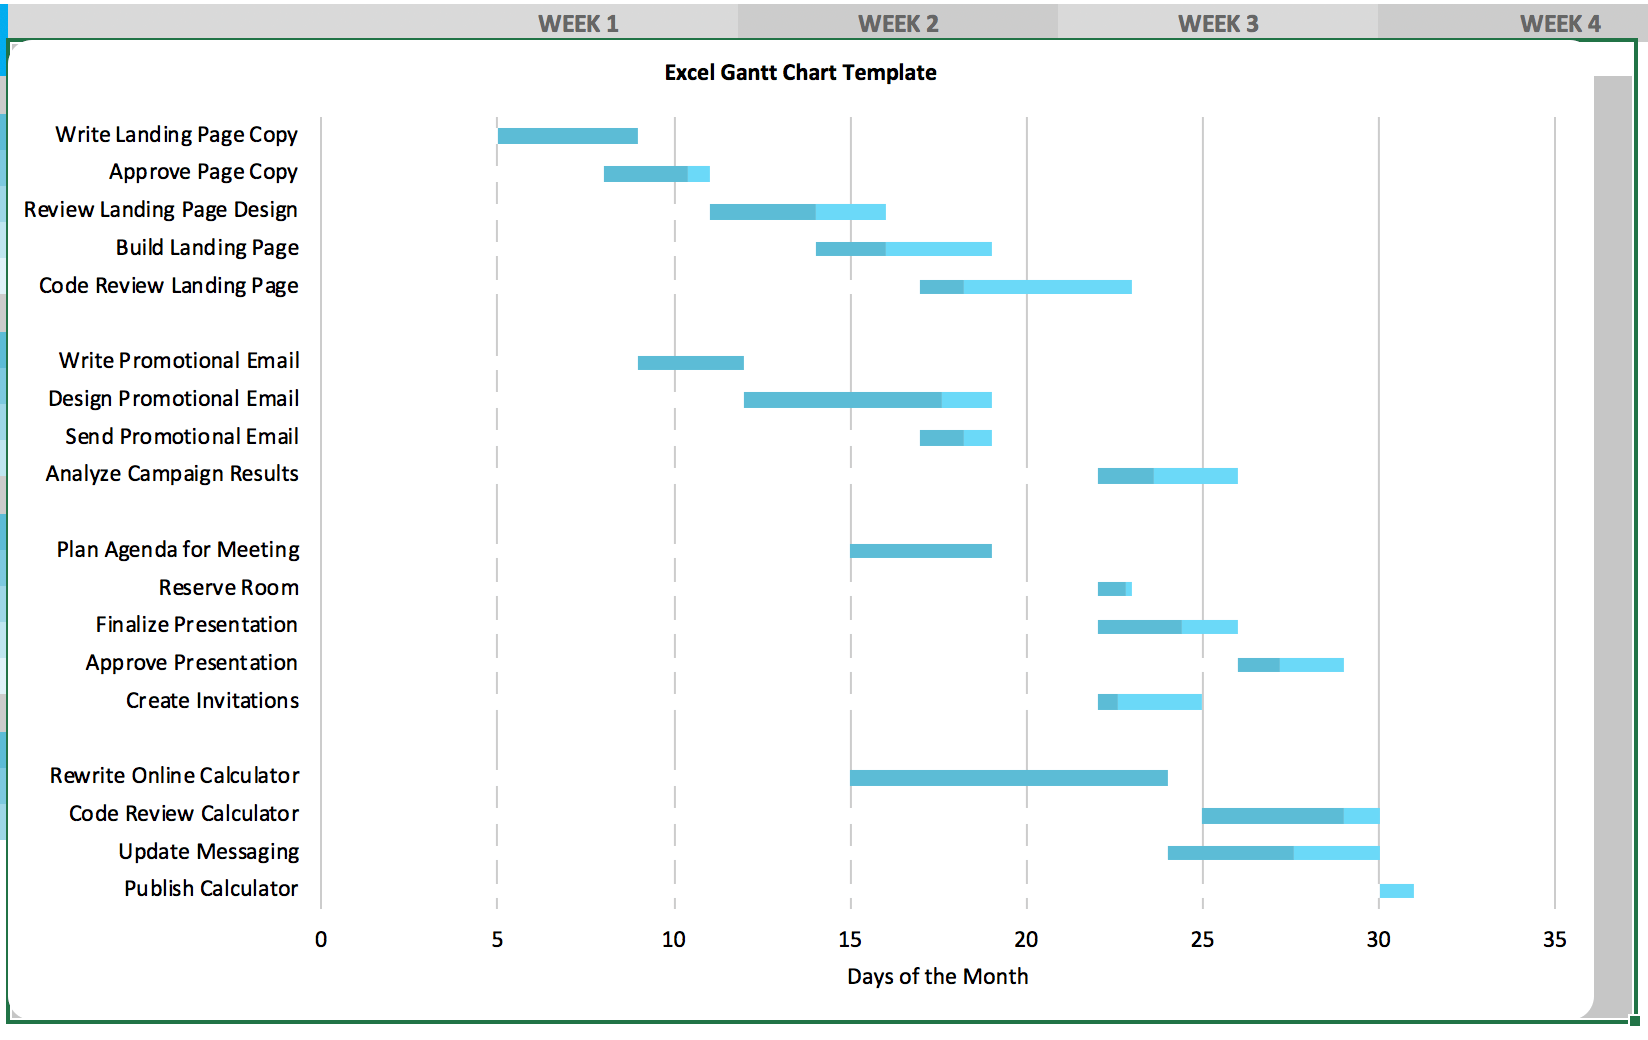 Sample Of Excel Template Project Plan Gantt In Excel Template Project Plan Gantt Example